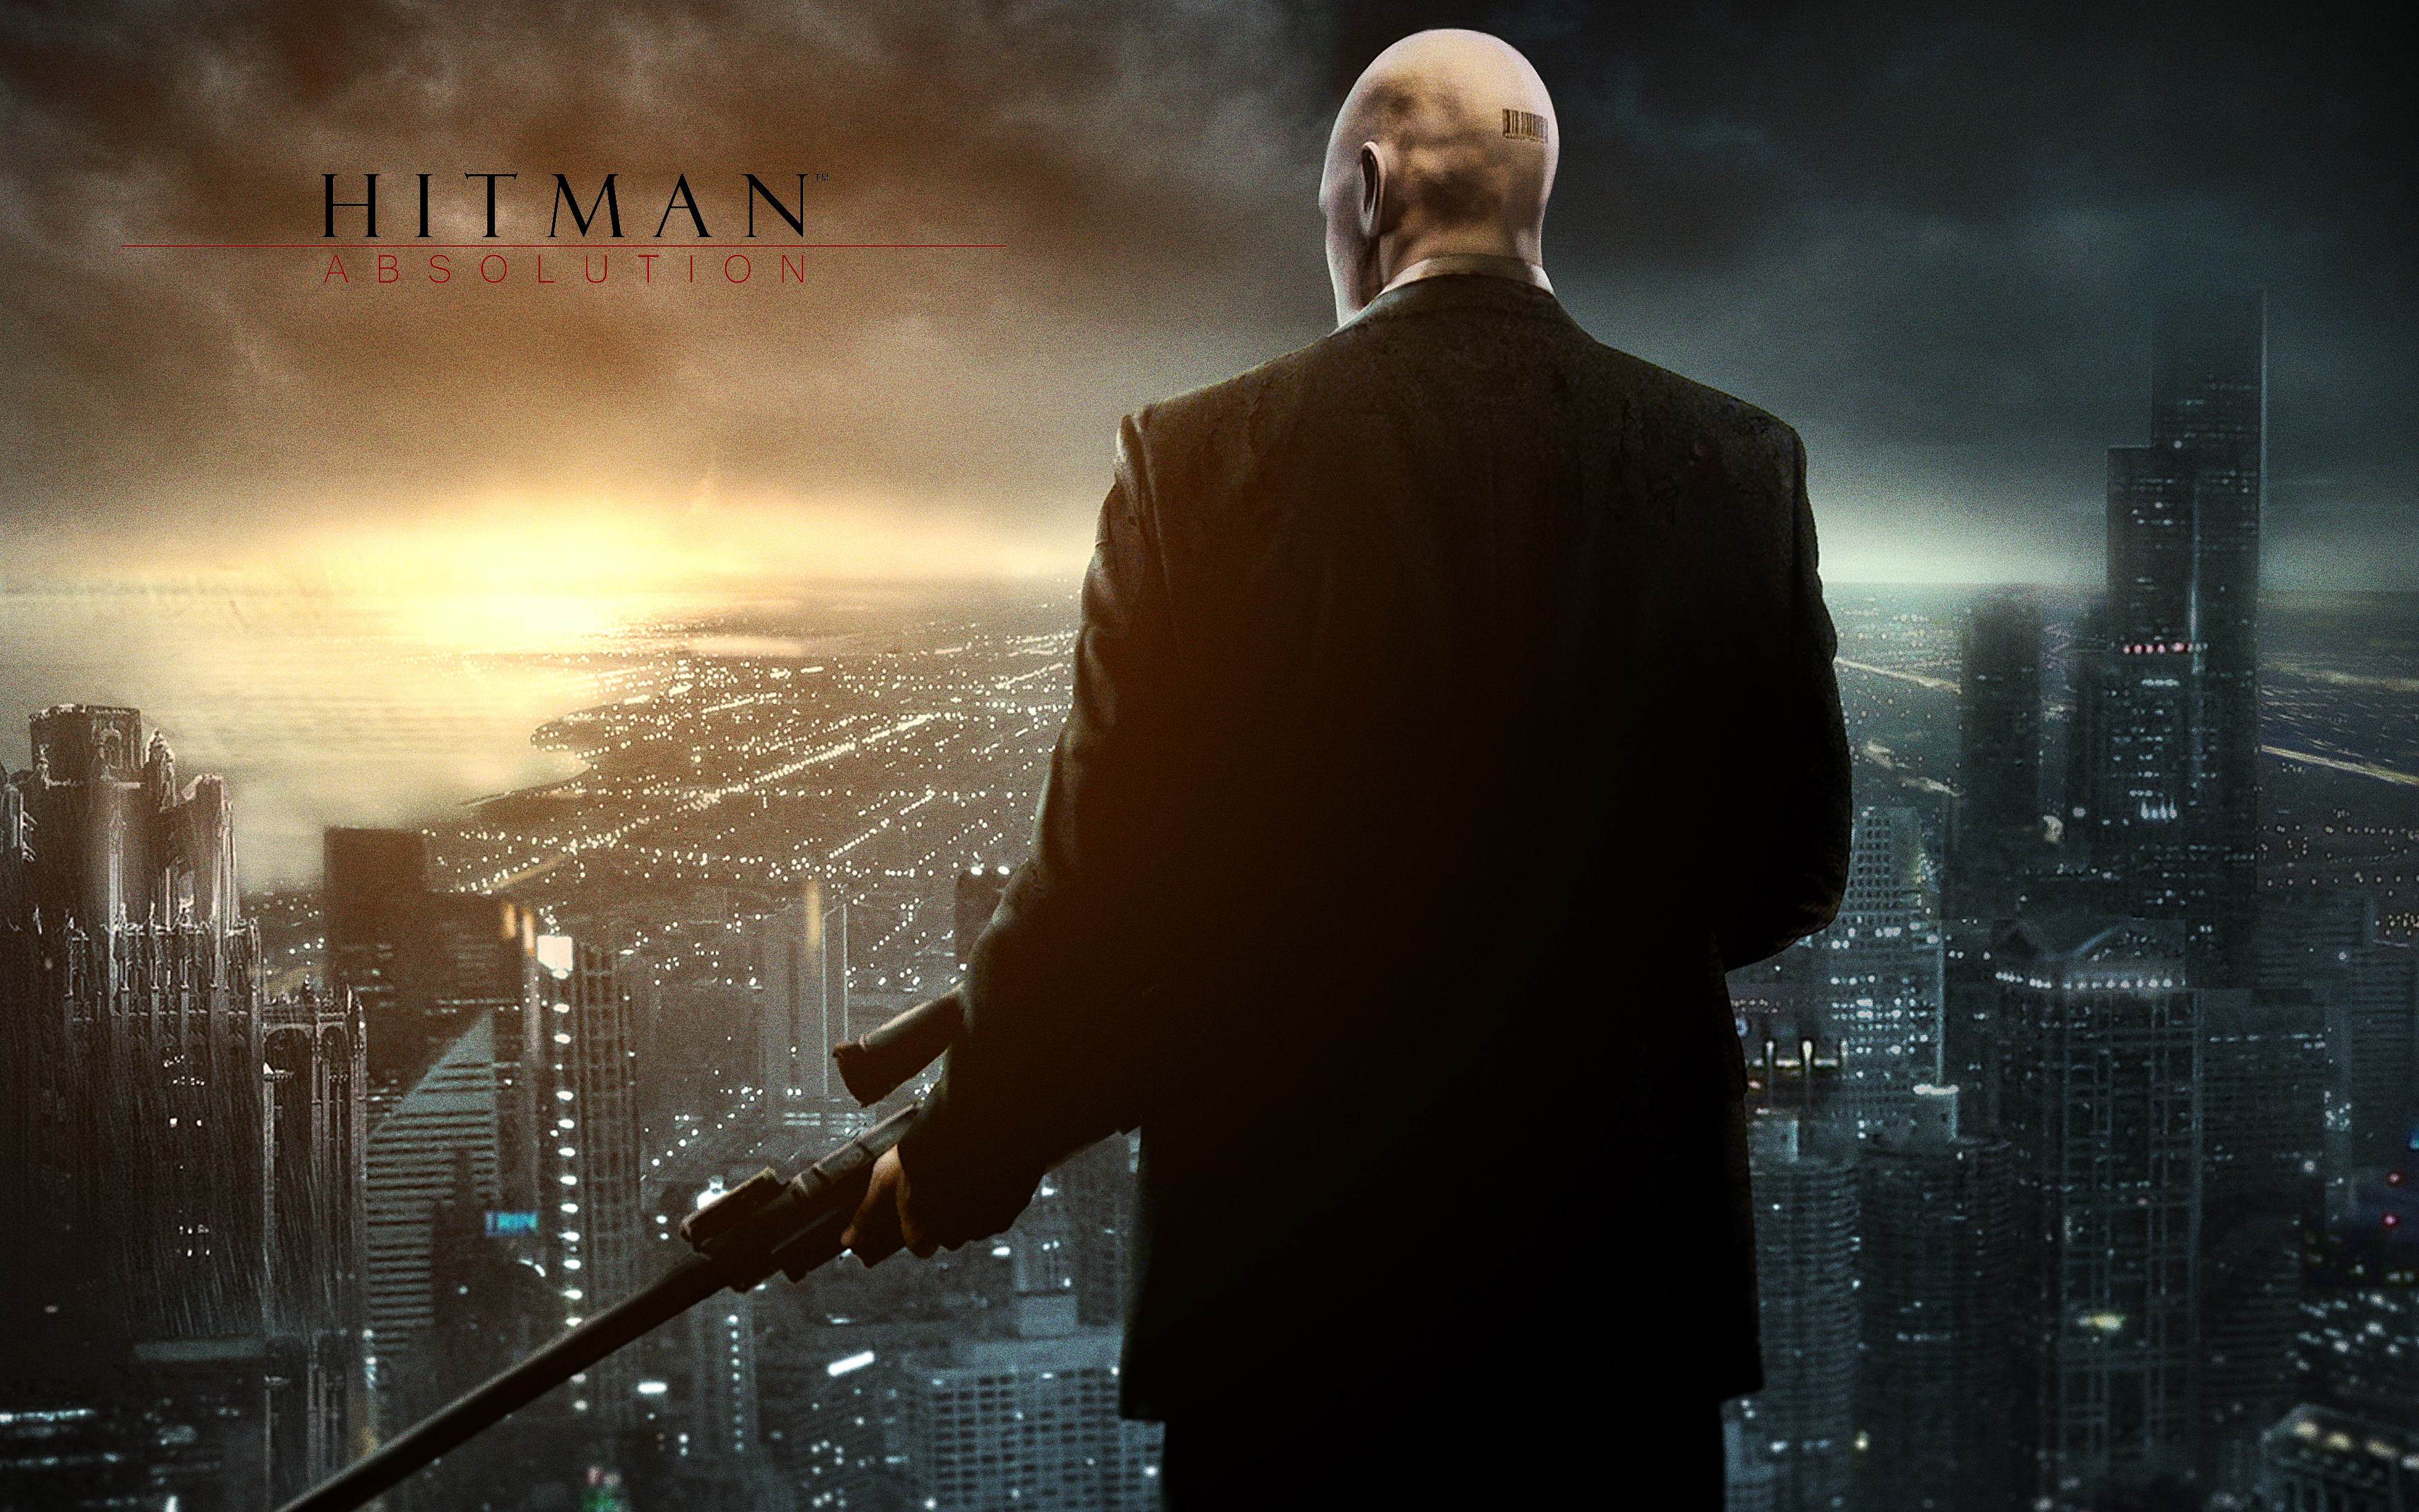 Hitman Absolution 2012 Wallpapers HD Wallpapers 3500x2188